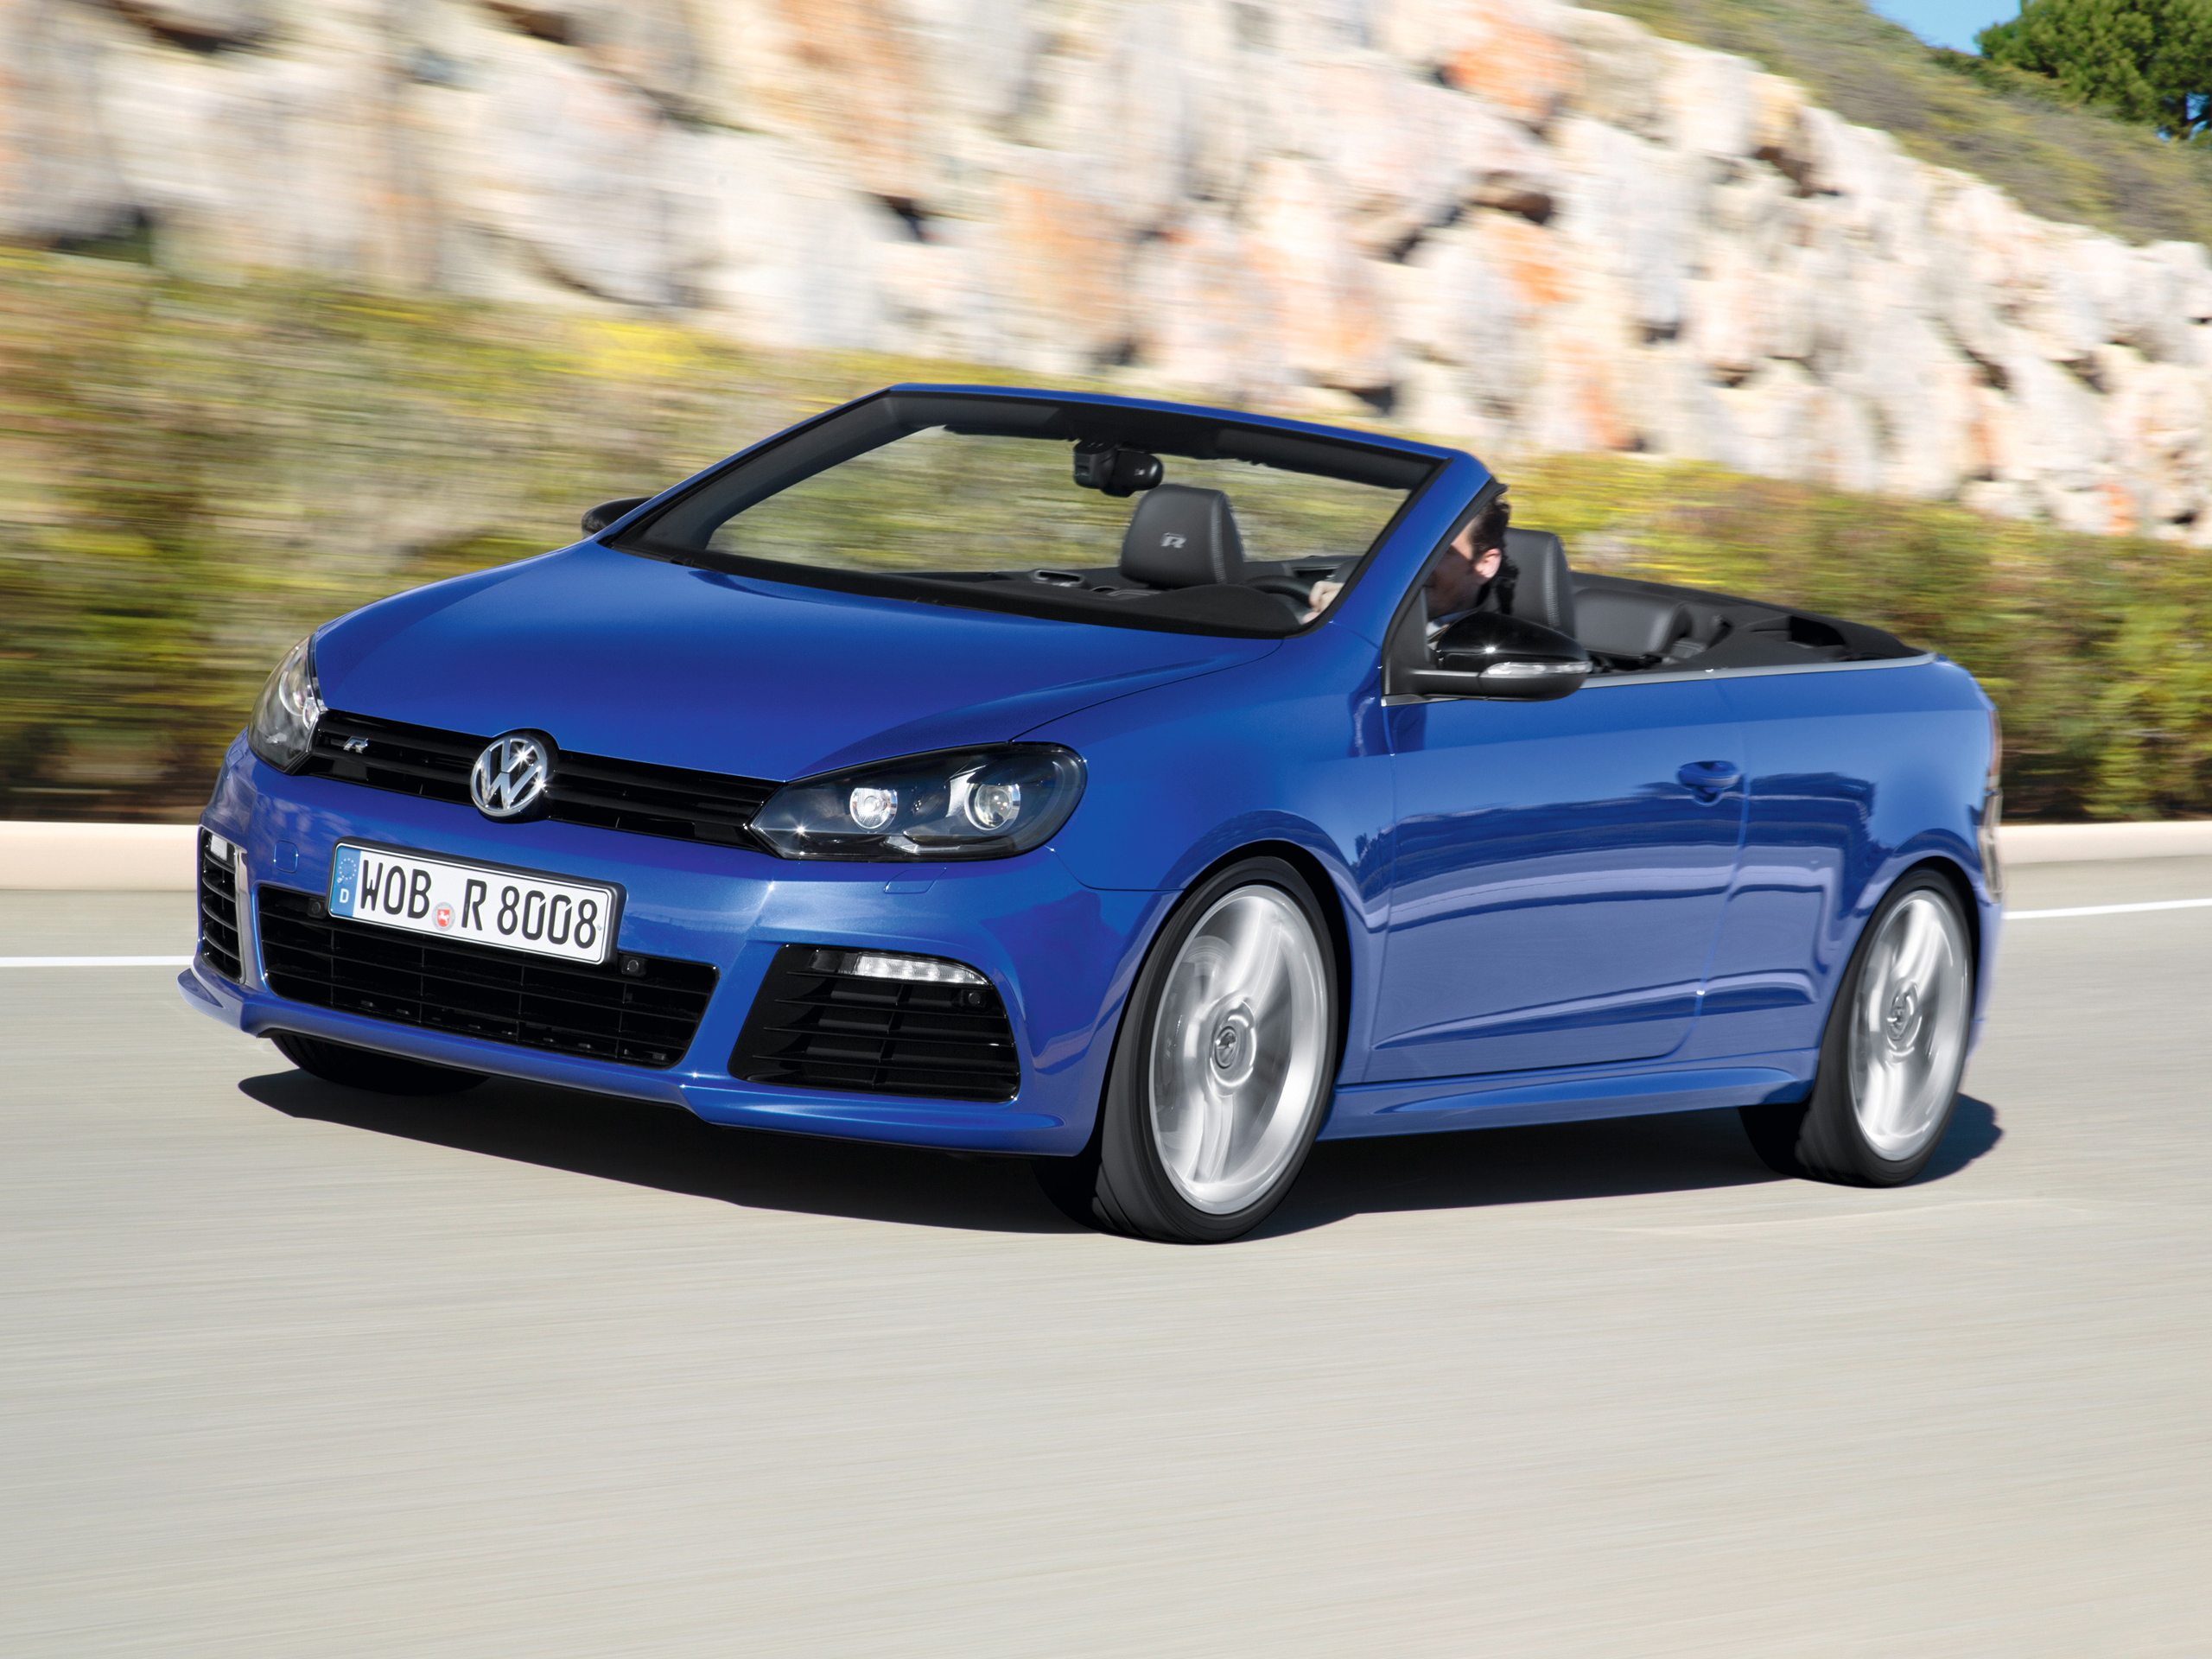 vw golf r cabrio 2013 im test bilder und technische daten. Black Bedroom Furniture Sets. Home Design Ideas